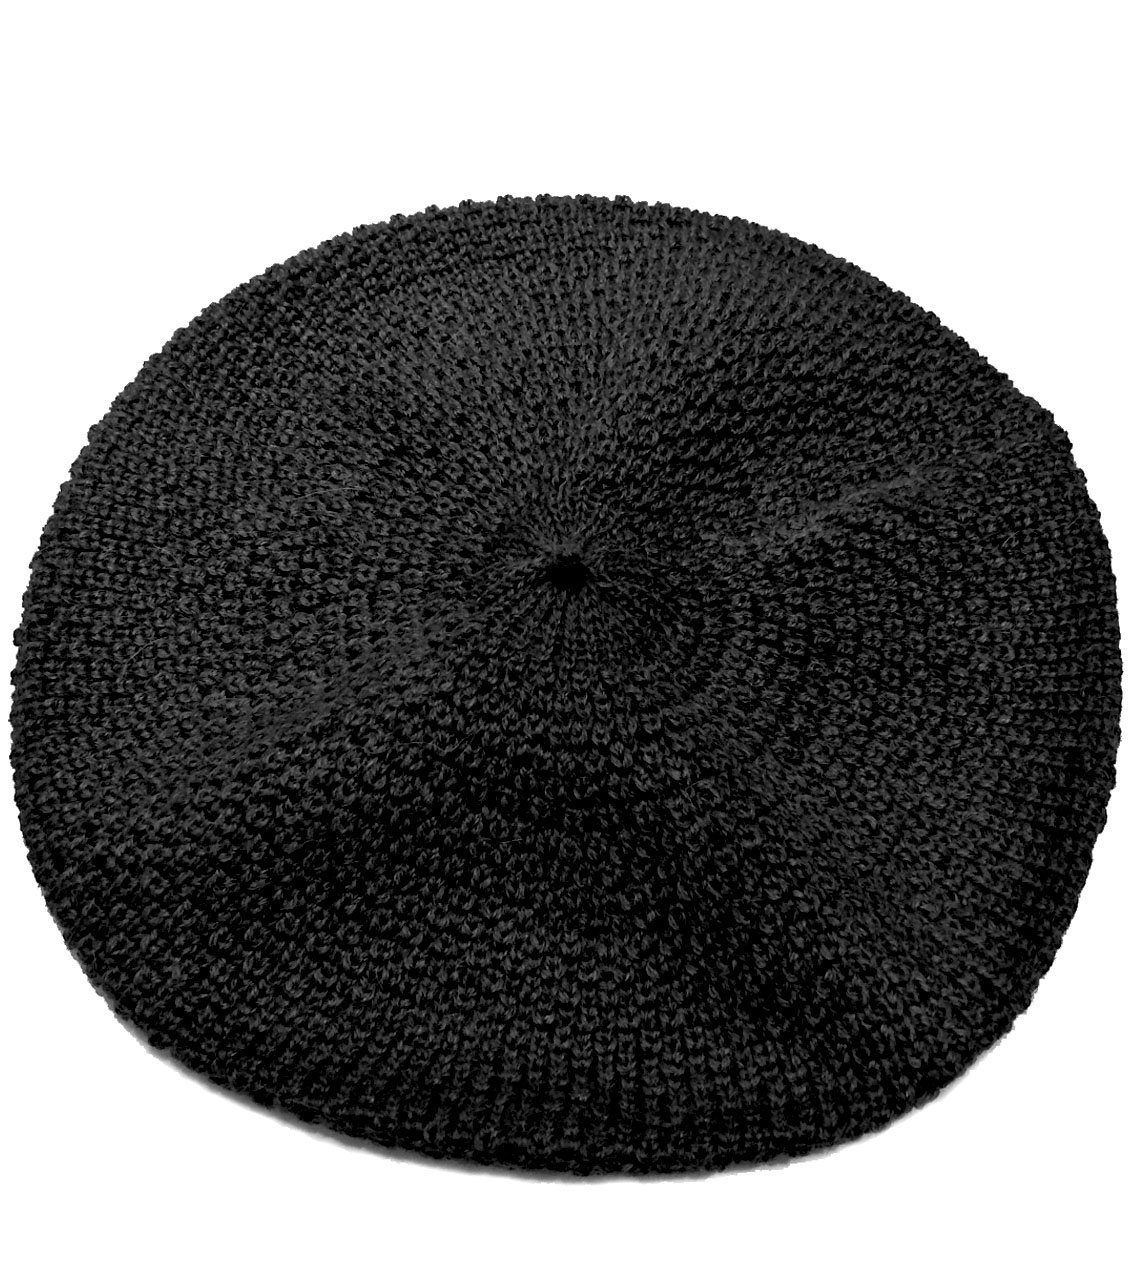 100% Pure Baby Alpaca Knit Beret - Soft Slouchy Style Tam for Women (Black) by Incredible Natural Creations from Alpaca - INCA Brands